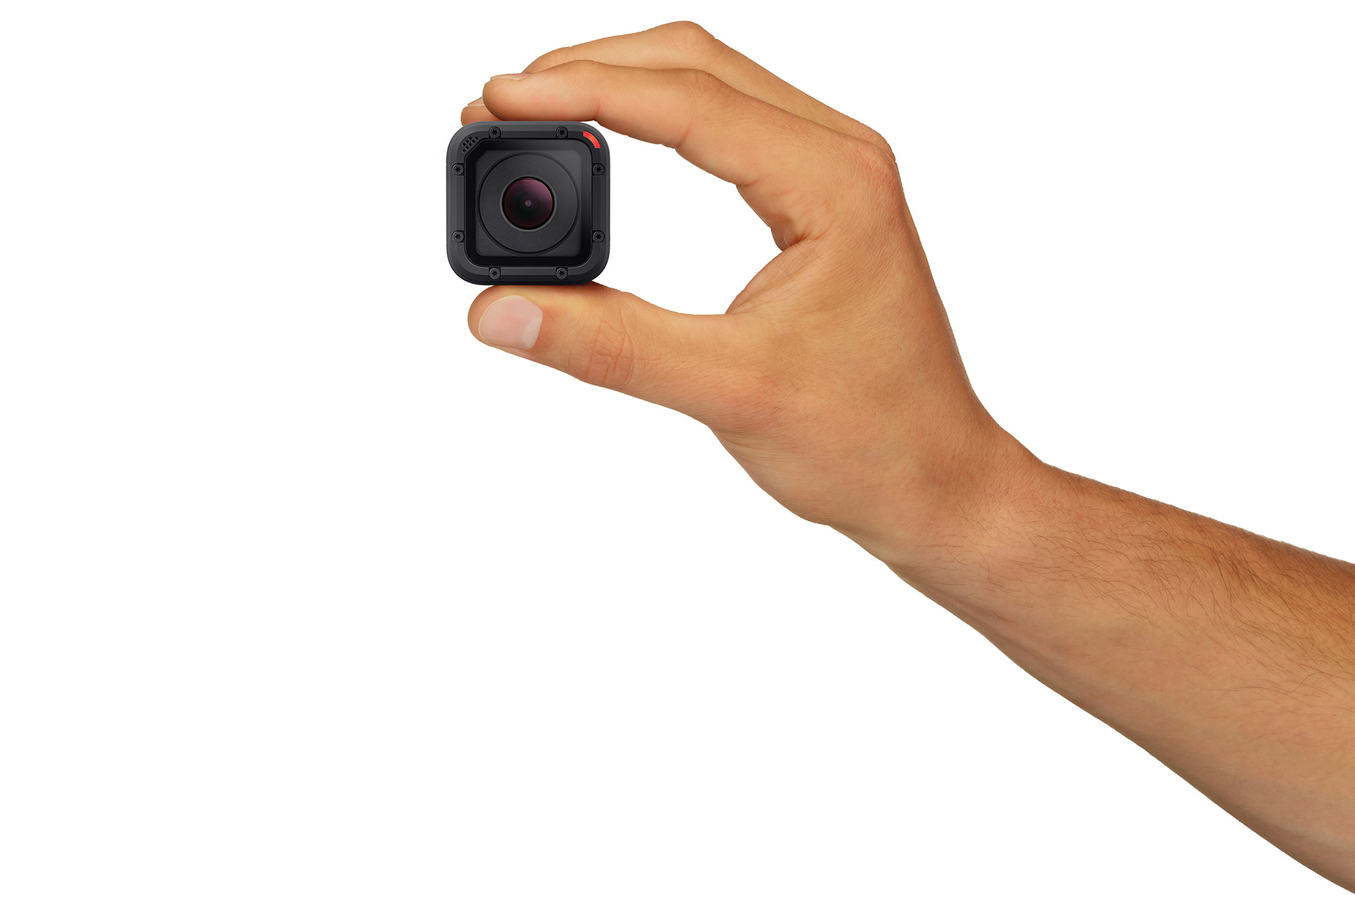 GoPro Studio 2.5 User Manual. • Supports GoPro, Canon, Nikon and other constant frame rate H.264 mp4 and .mov4 formats.The User Manual explains how to use GoPro Studio, giving an overview of the product's purpose and highlighting its various workflow options.